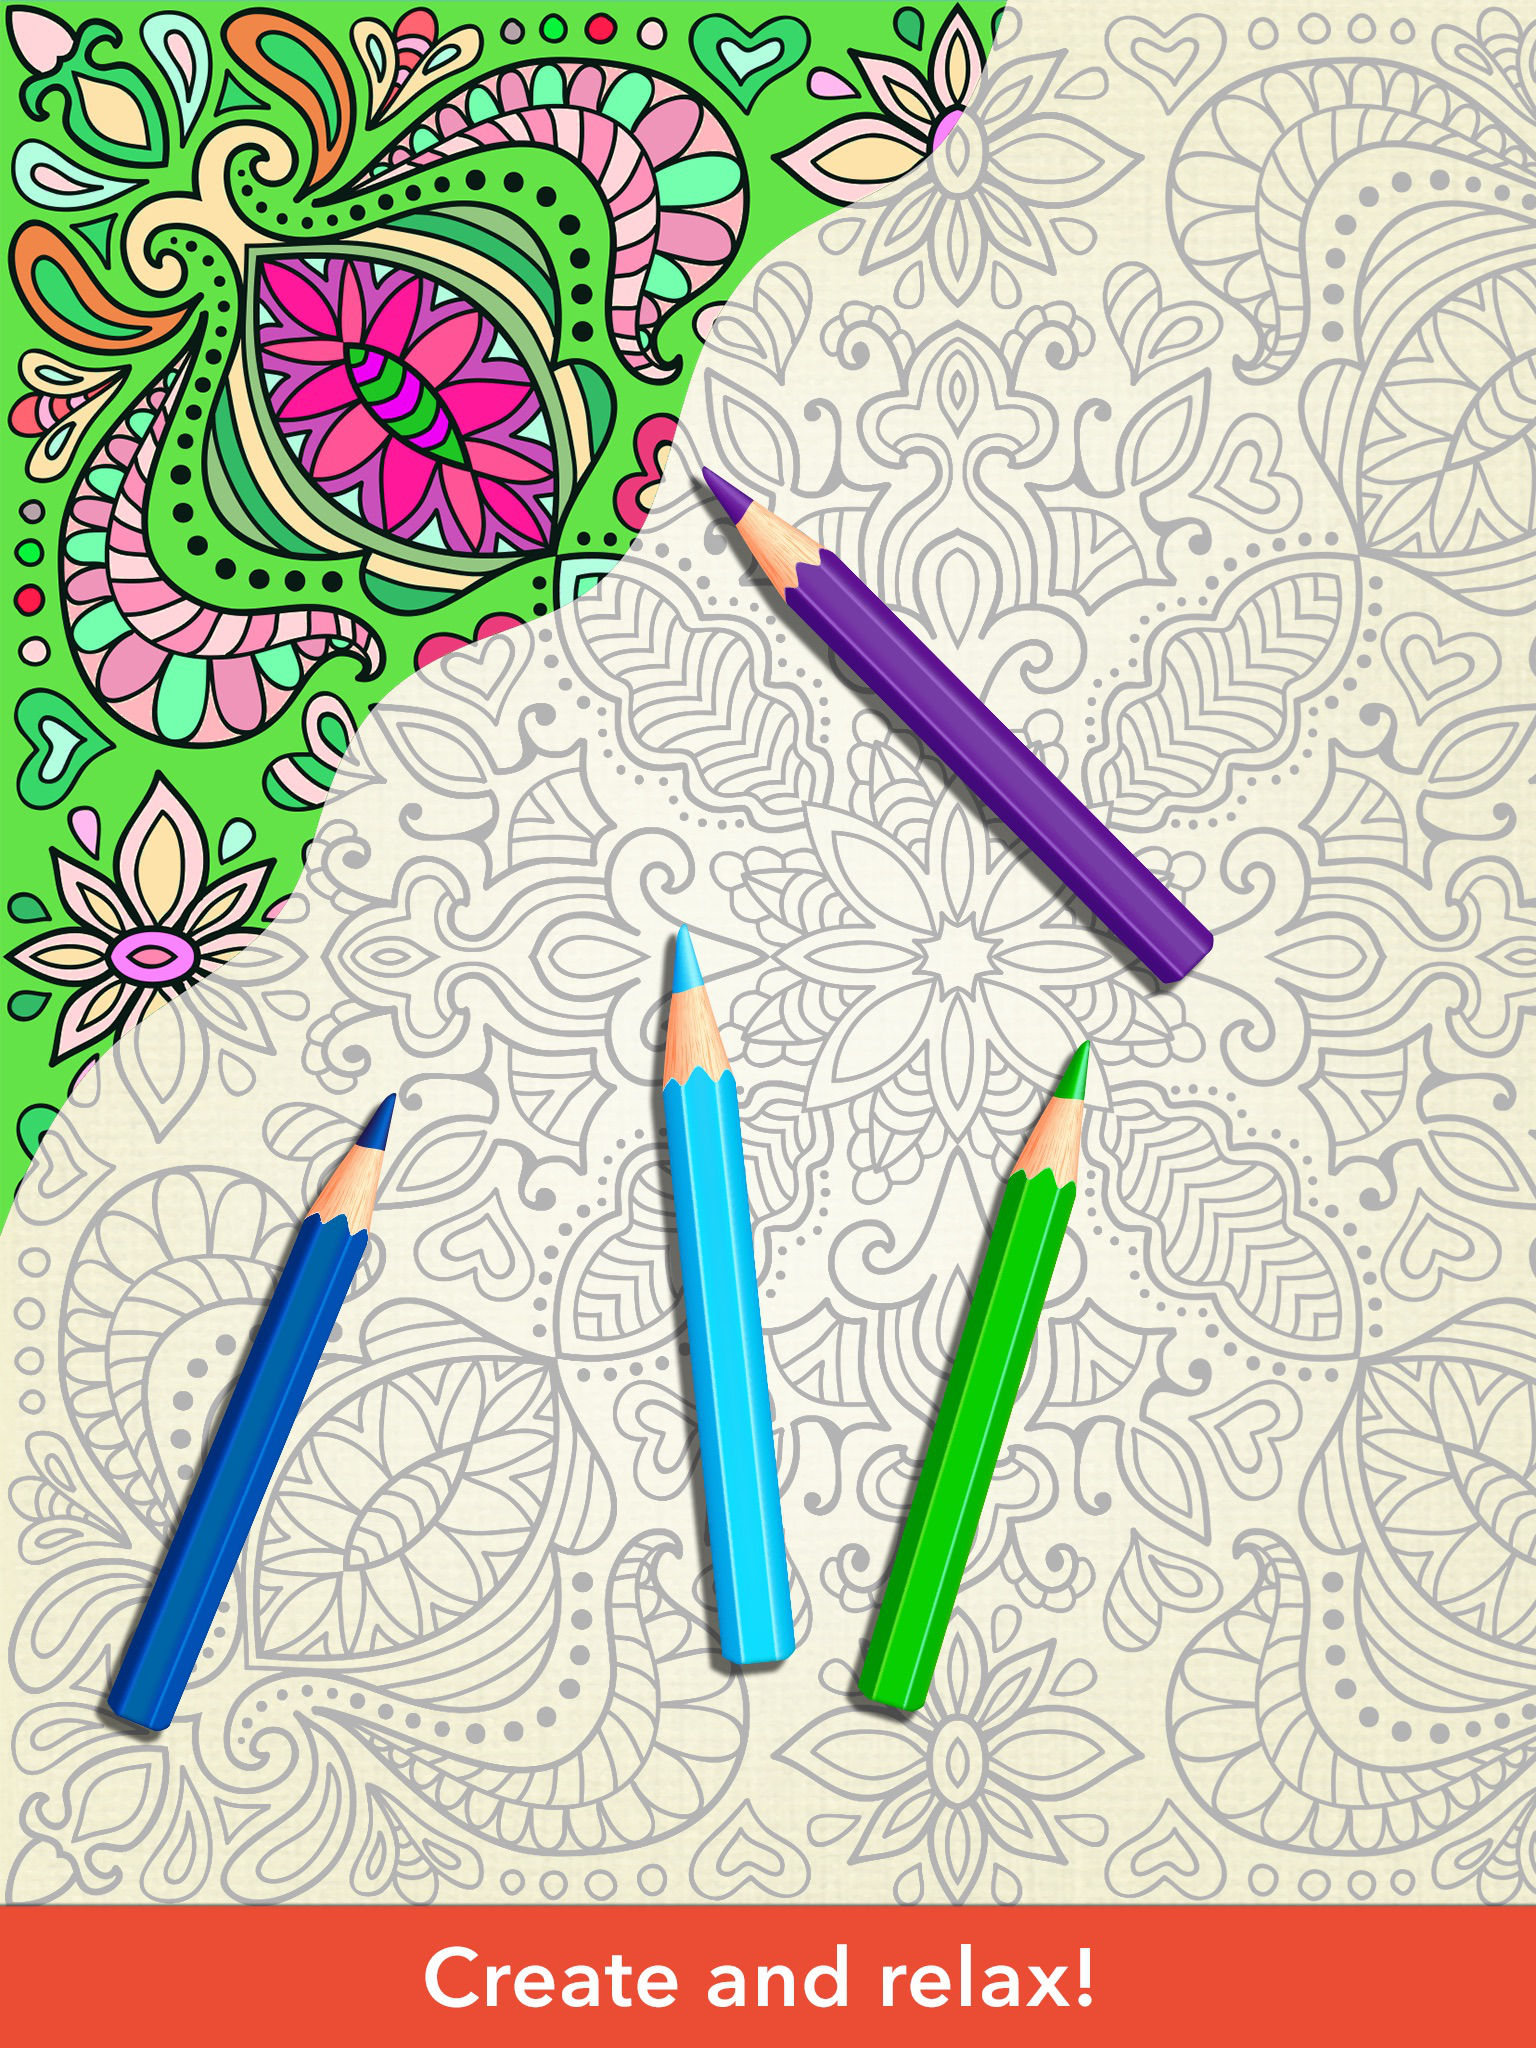 Zen coloring books for adults app - App Description